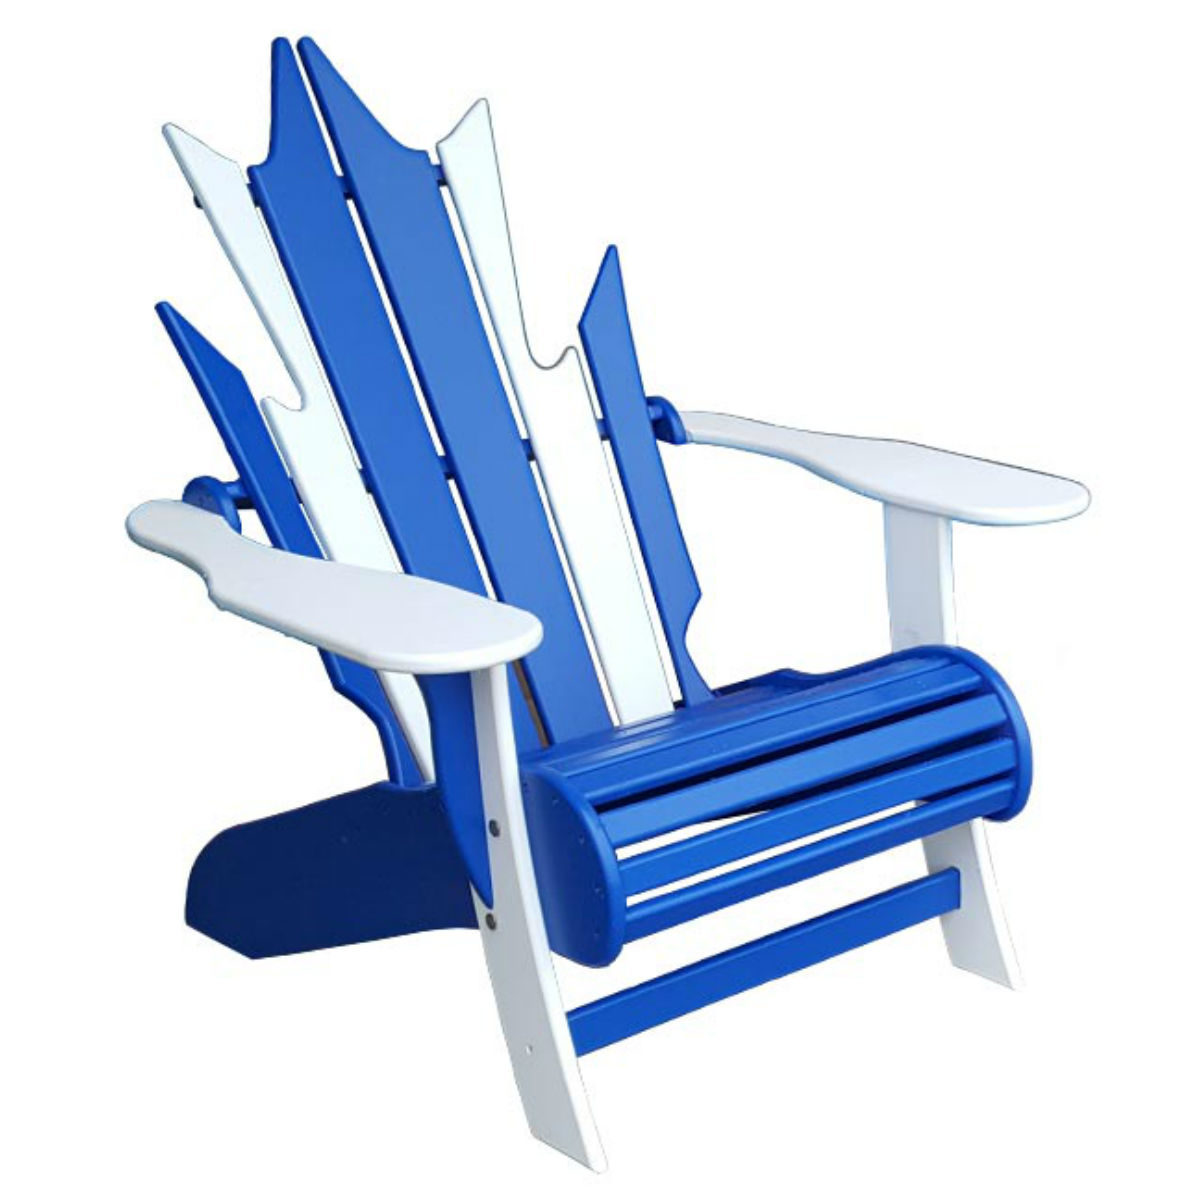 Maple Leaf Grande Muskoka Chair - Cobalt Blue & White